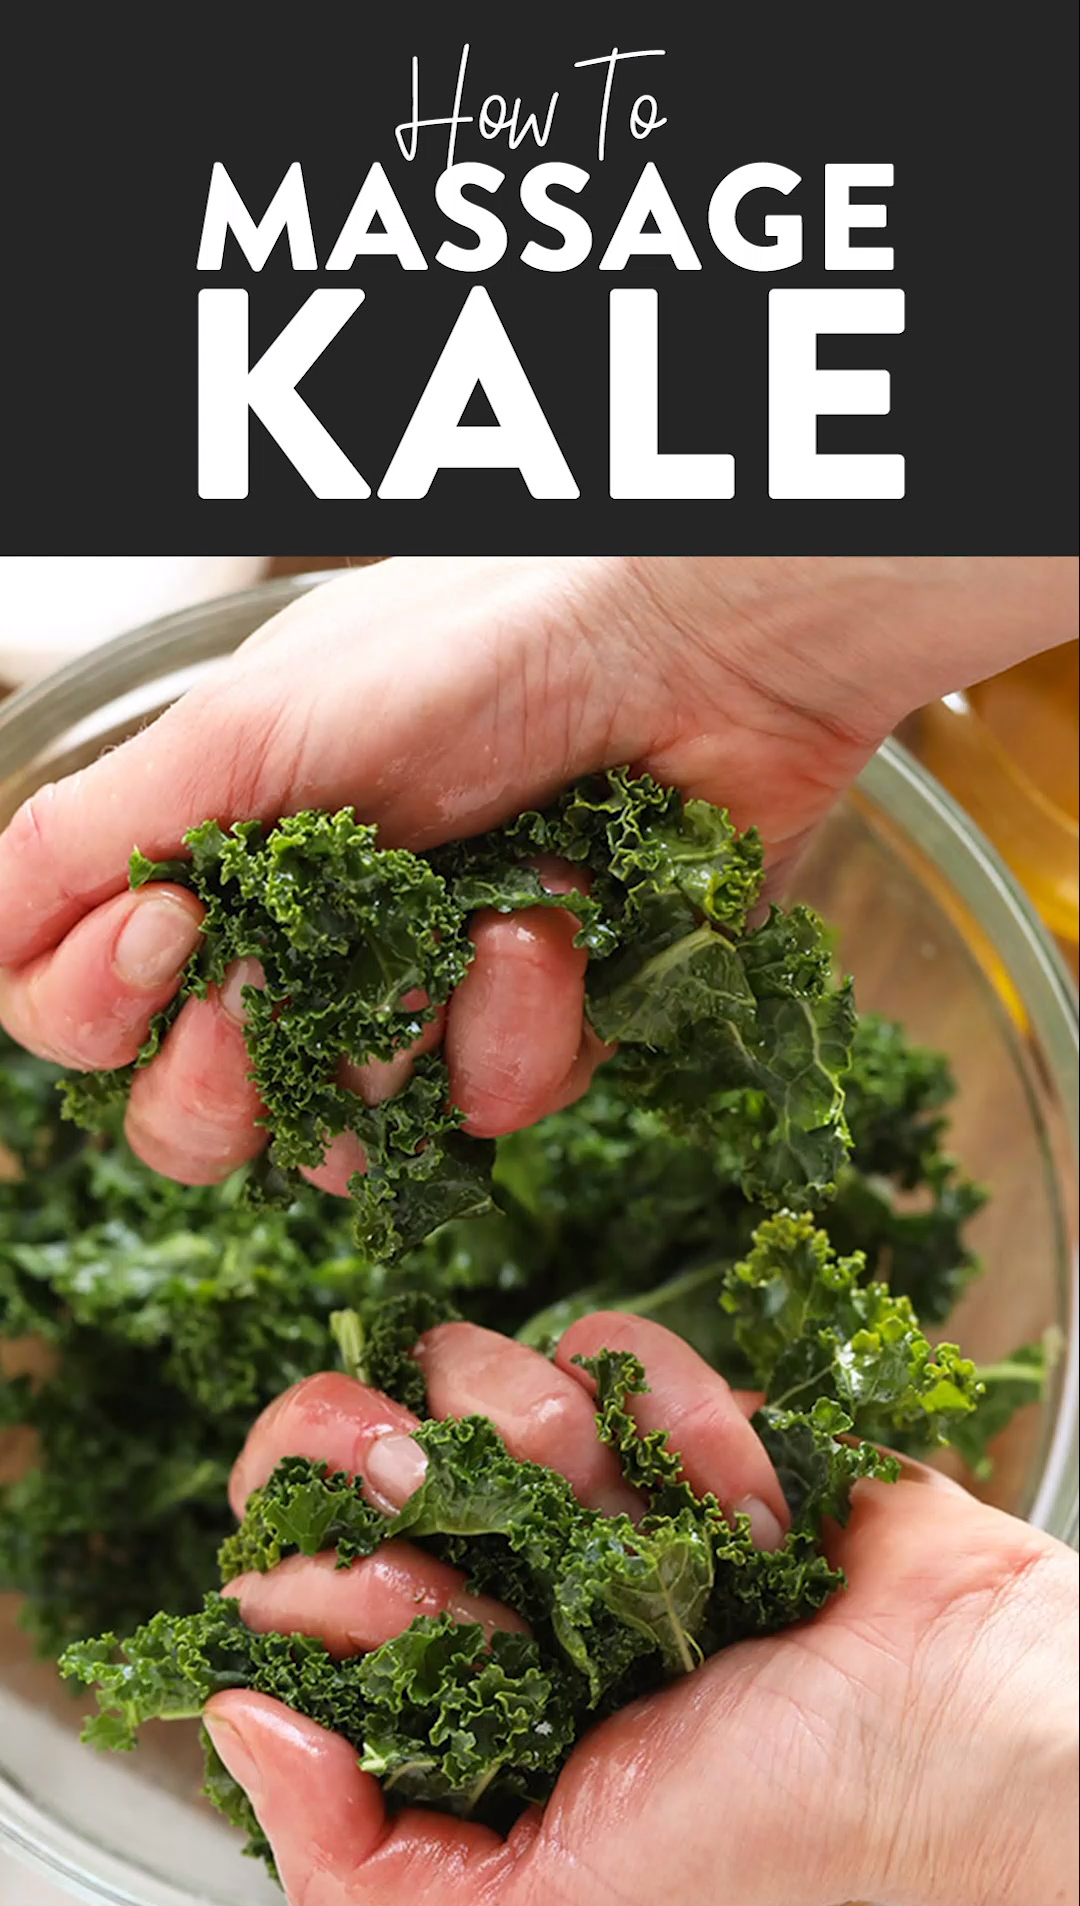 How to Massage Kale